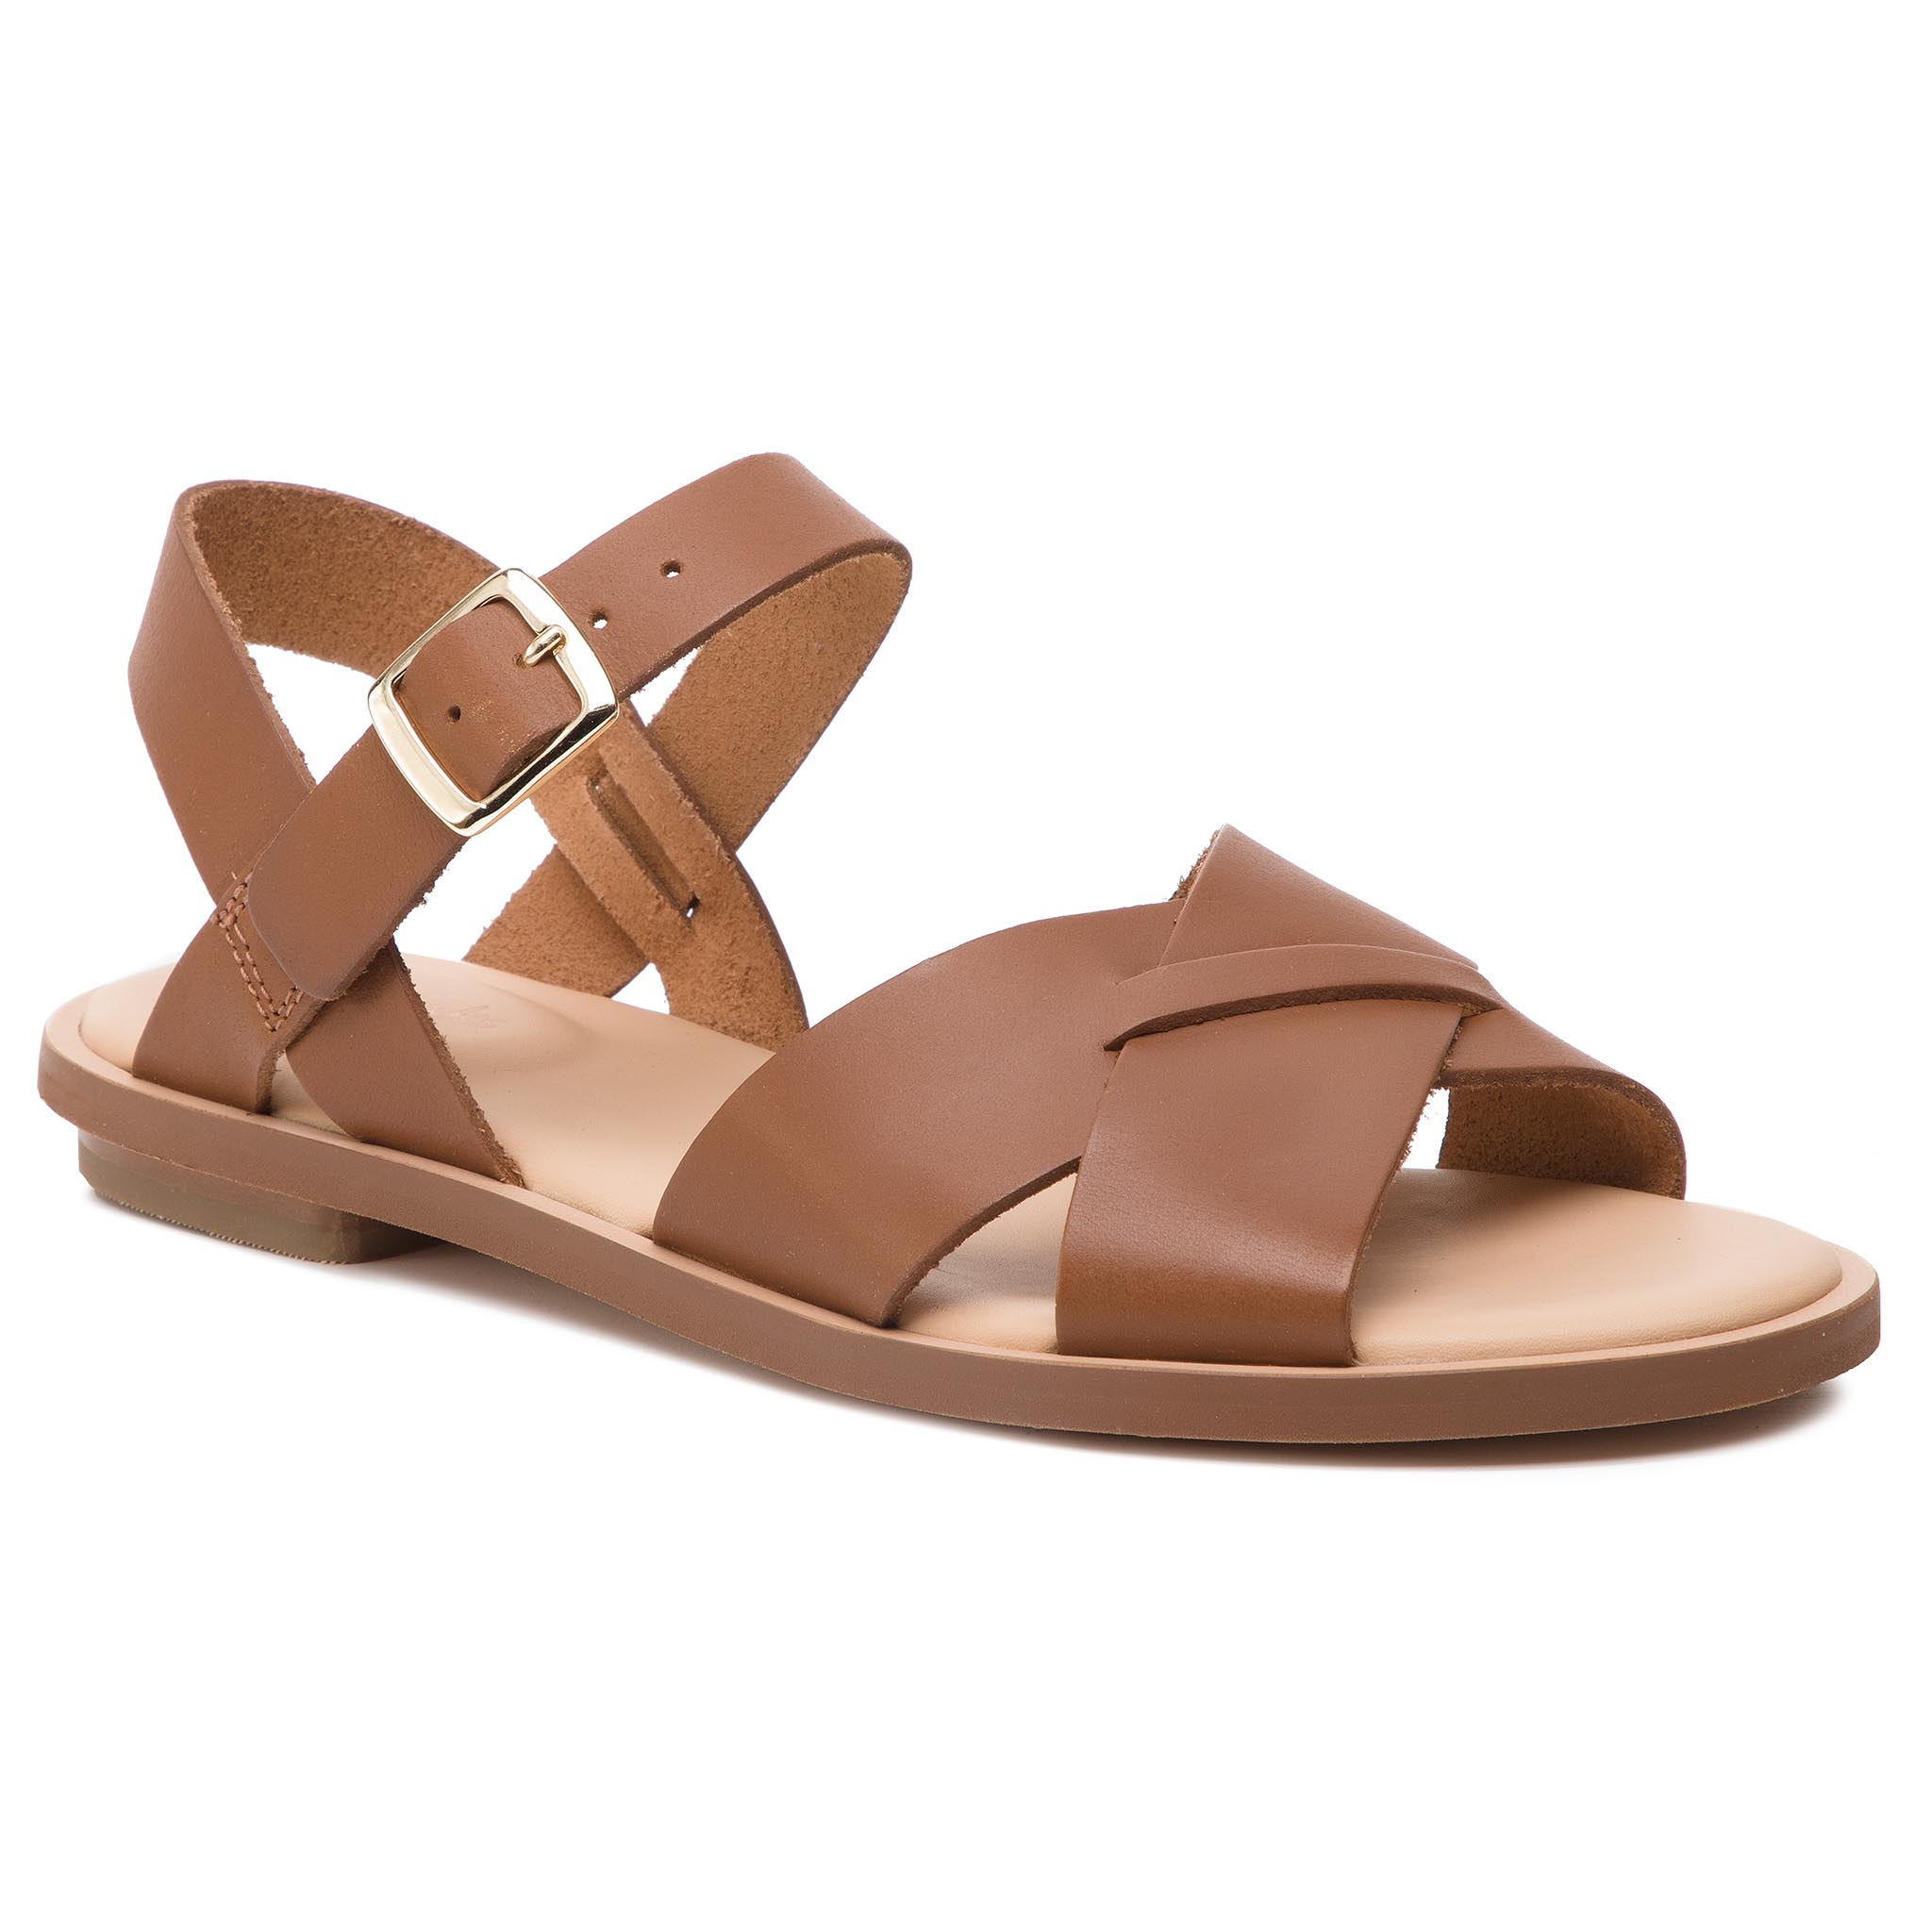 Sandale CLARKS - Willow Gild 261394314 Tan Leather